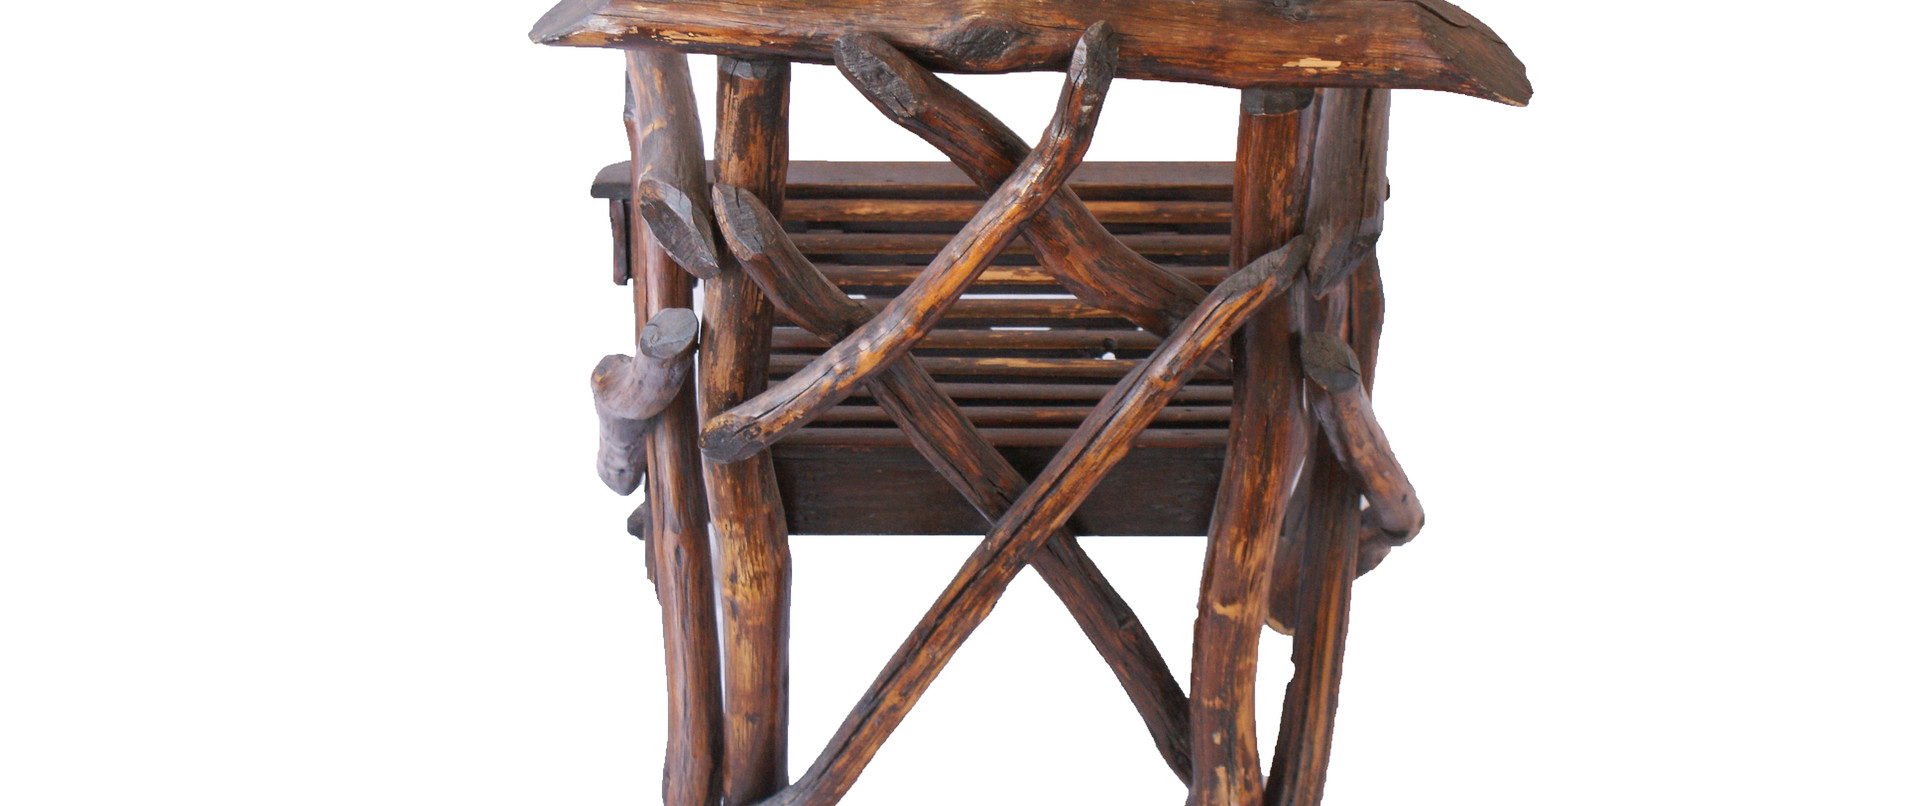 Early 20th Century American Folk Art Twig/Root Rustic Arm Chair